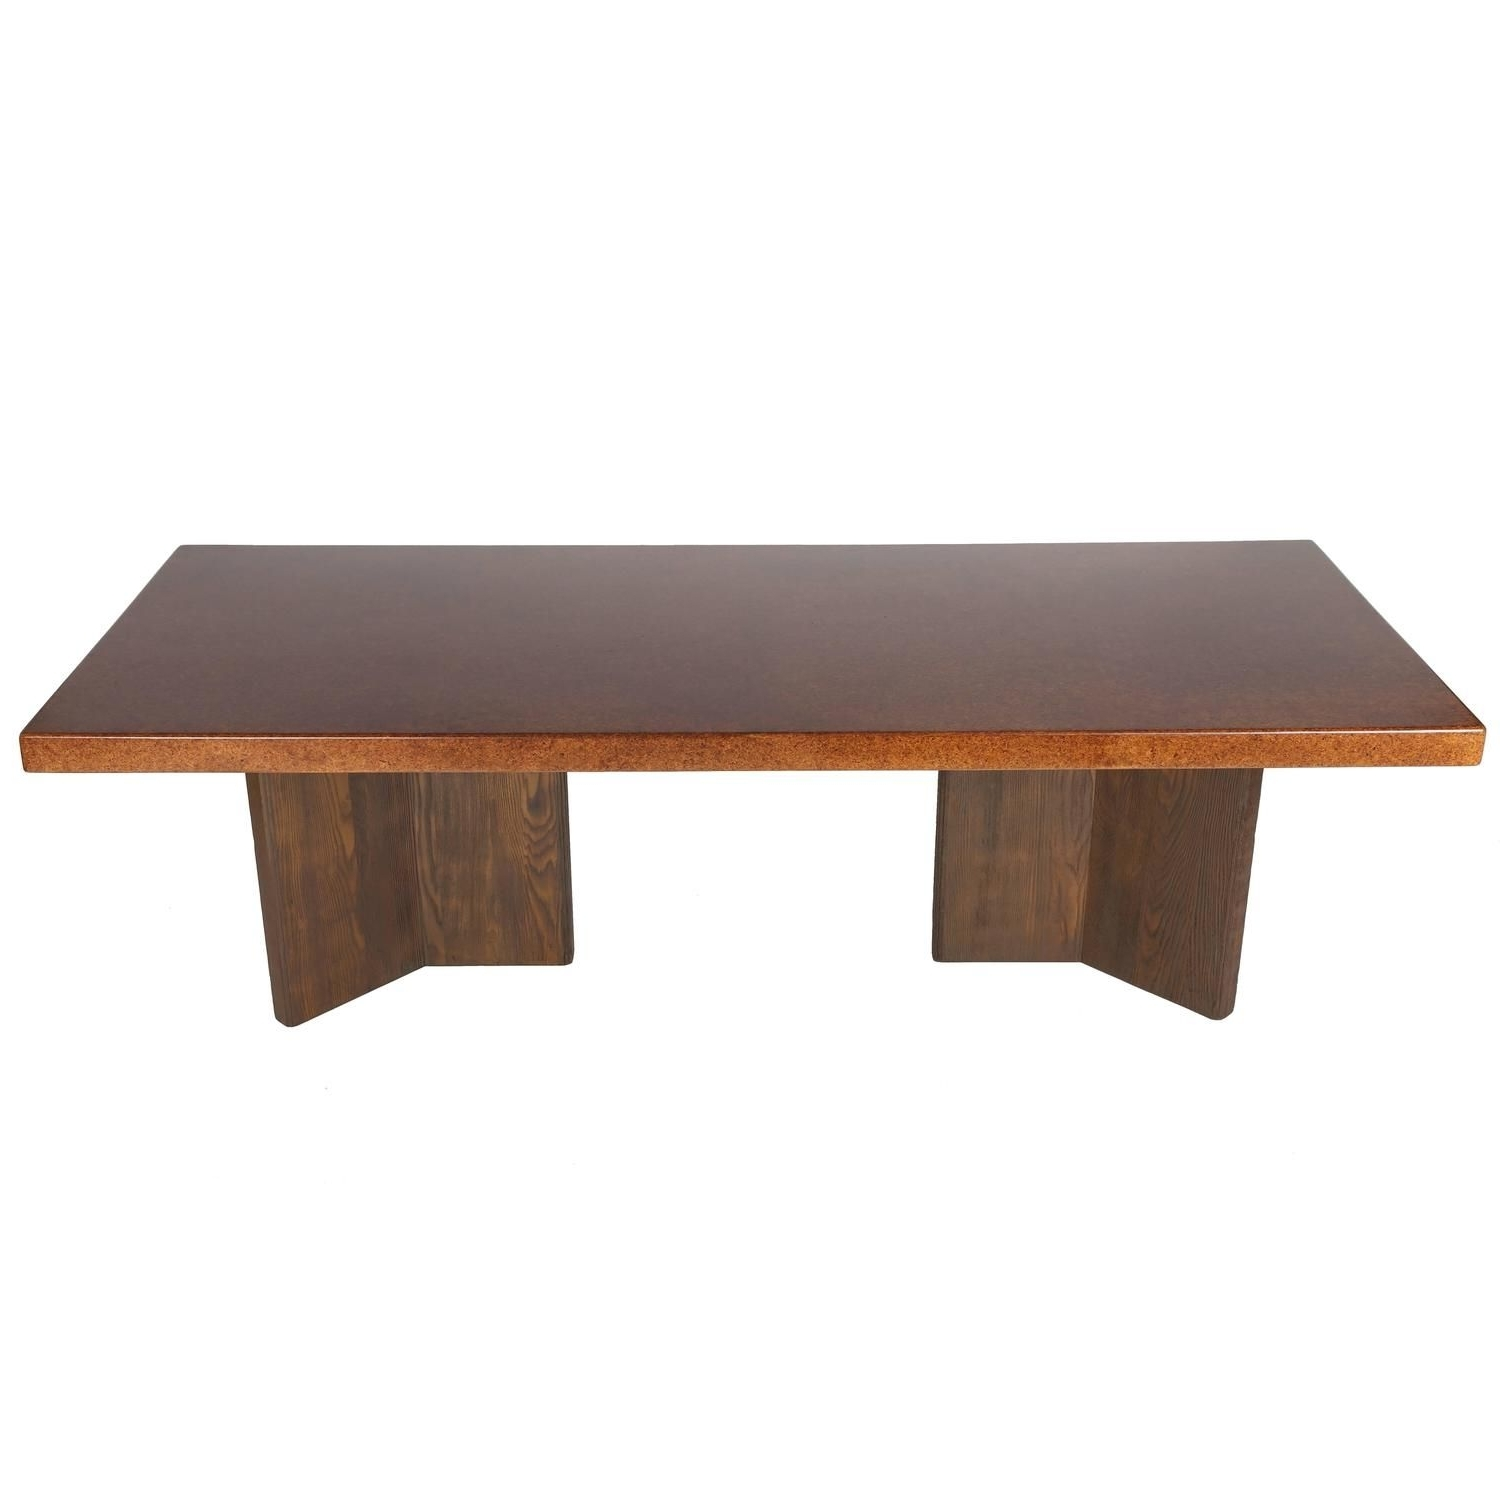 Preferred Cork Dining Tables With Large Cork Top Dining Tablepaul Frankl For Johnson Furniture (View 19 of 25)